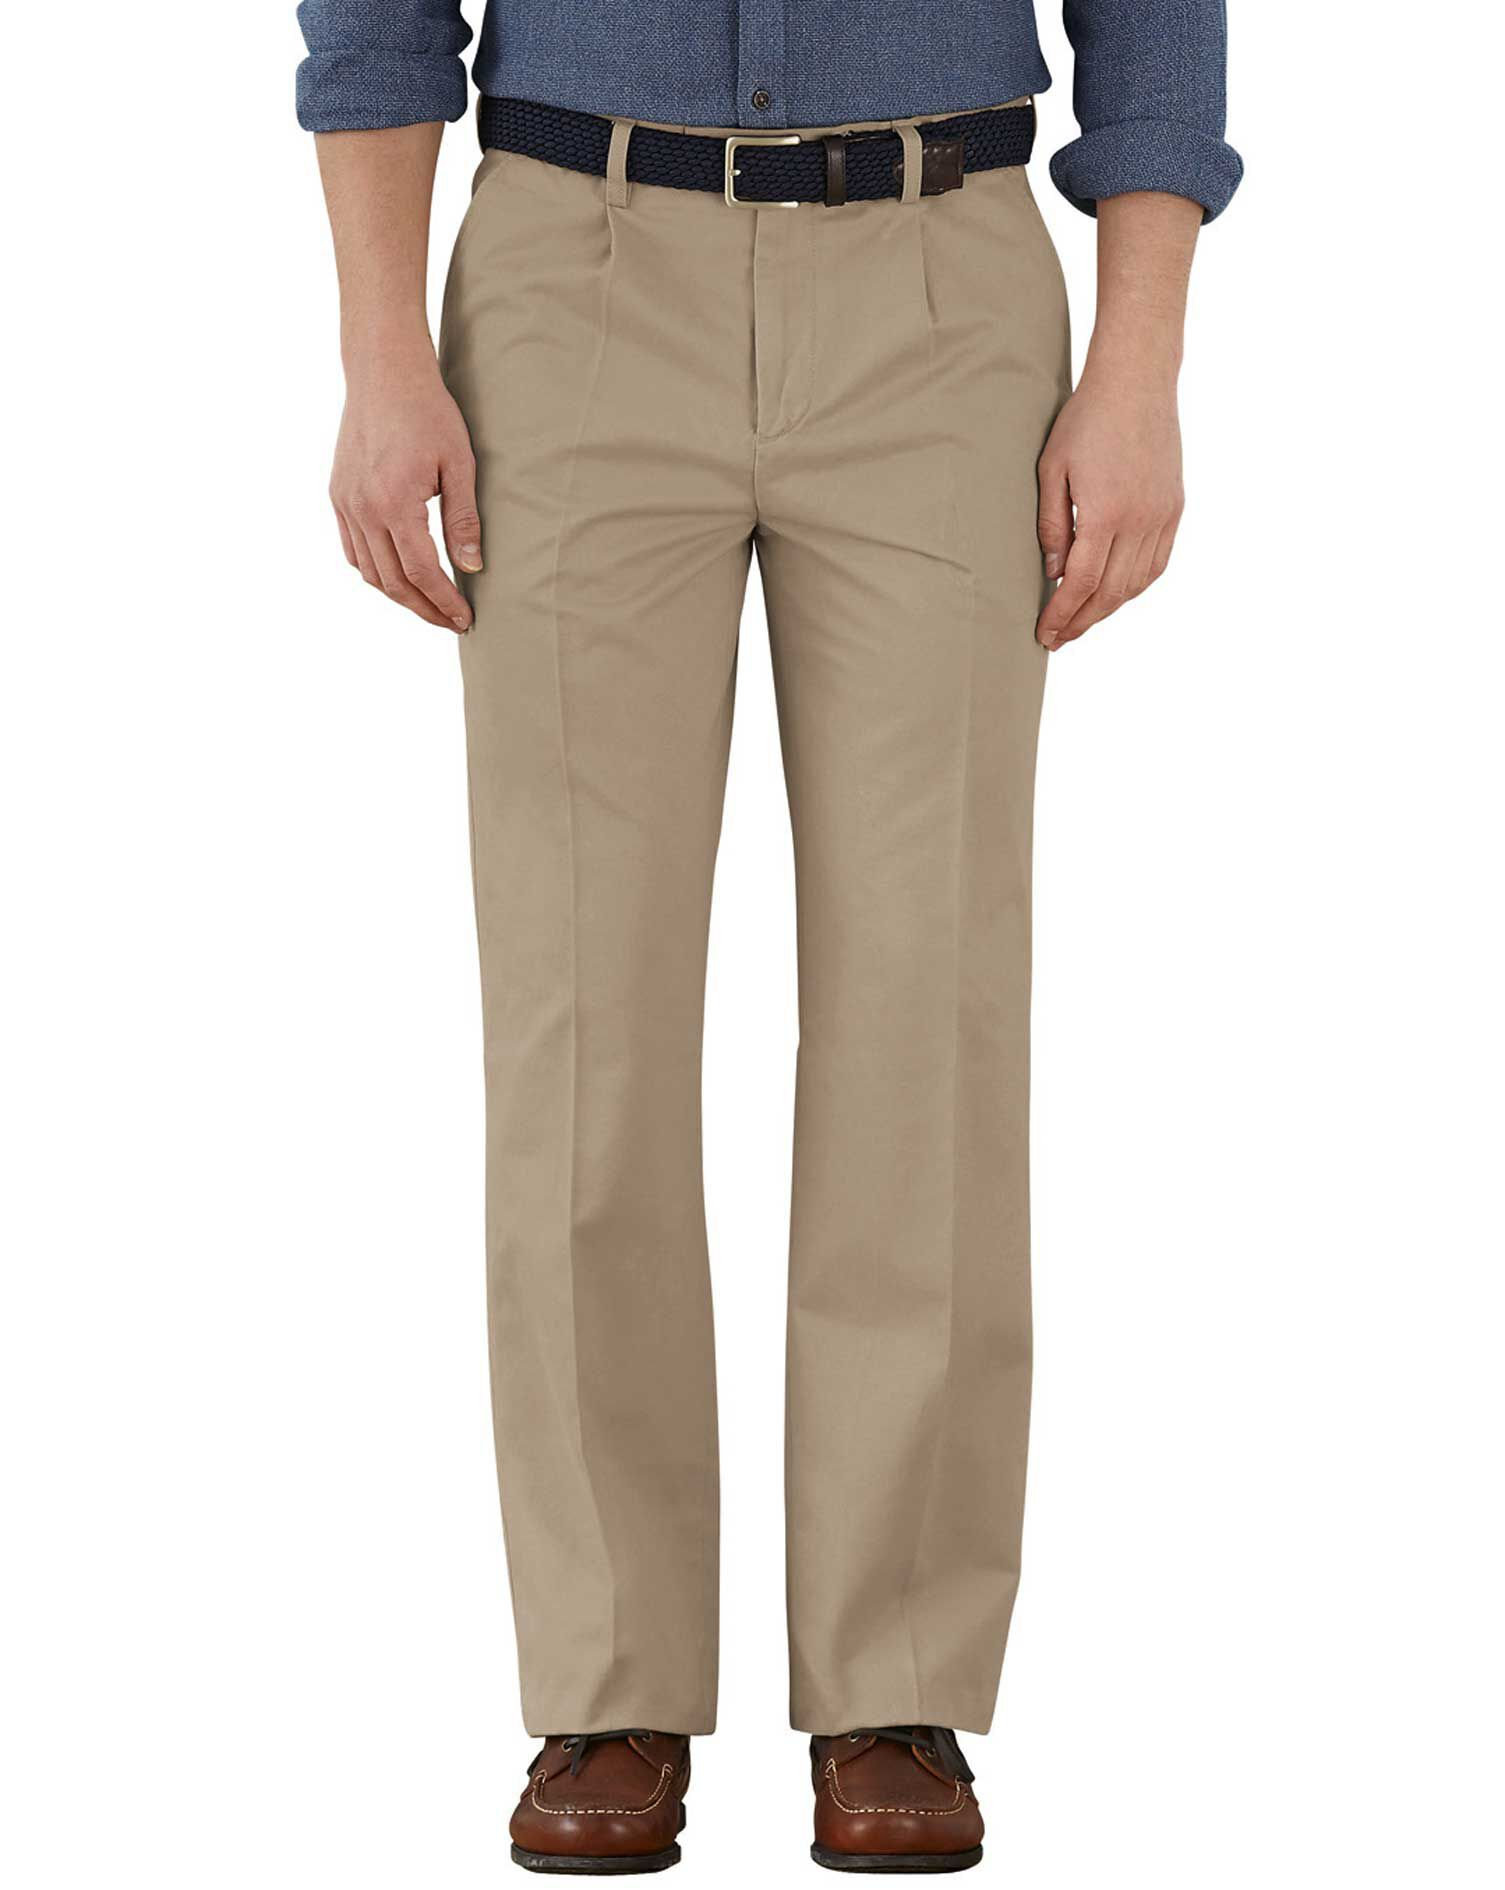 Stone Classic Fit Single Pleat Weekend Cotton Chino Trousers Size W42 L32 by Charles Tyrwhitt